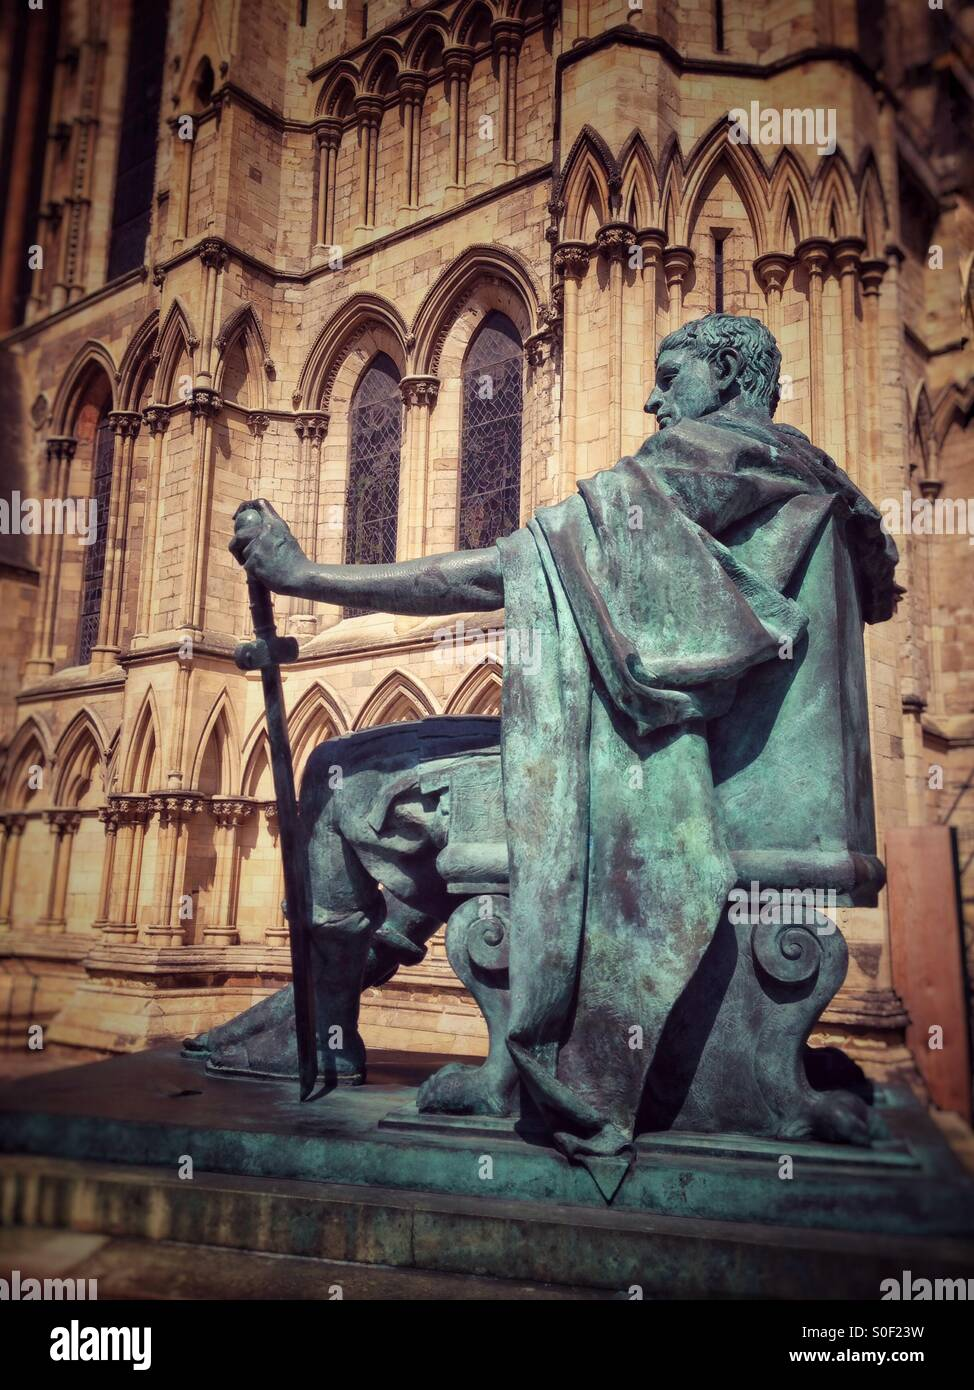 Emperor Constantine statue outside a sunlit York Minster, Yorkshire England UK - Stock Image